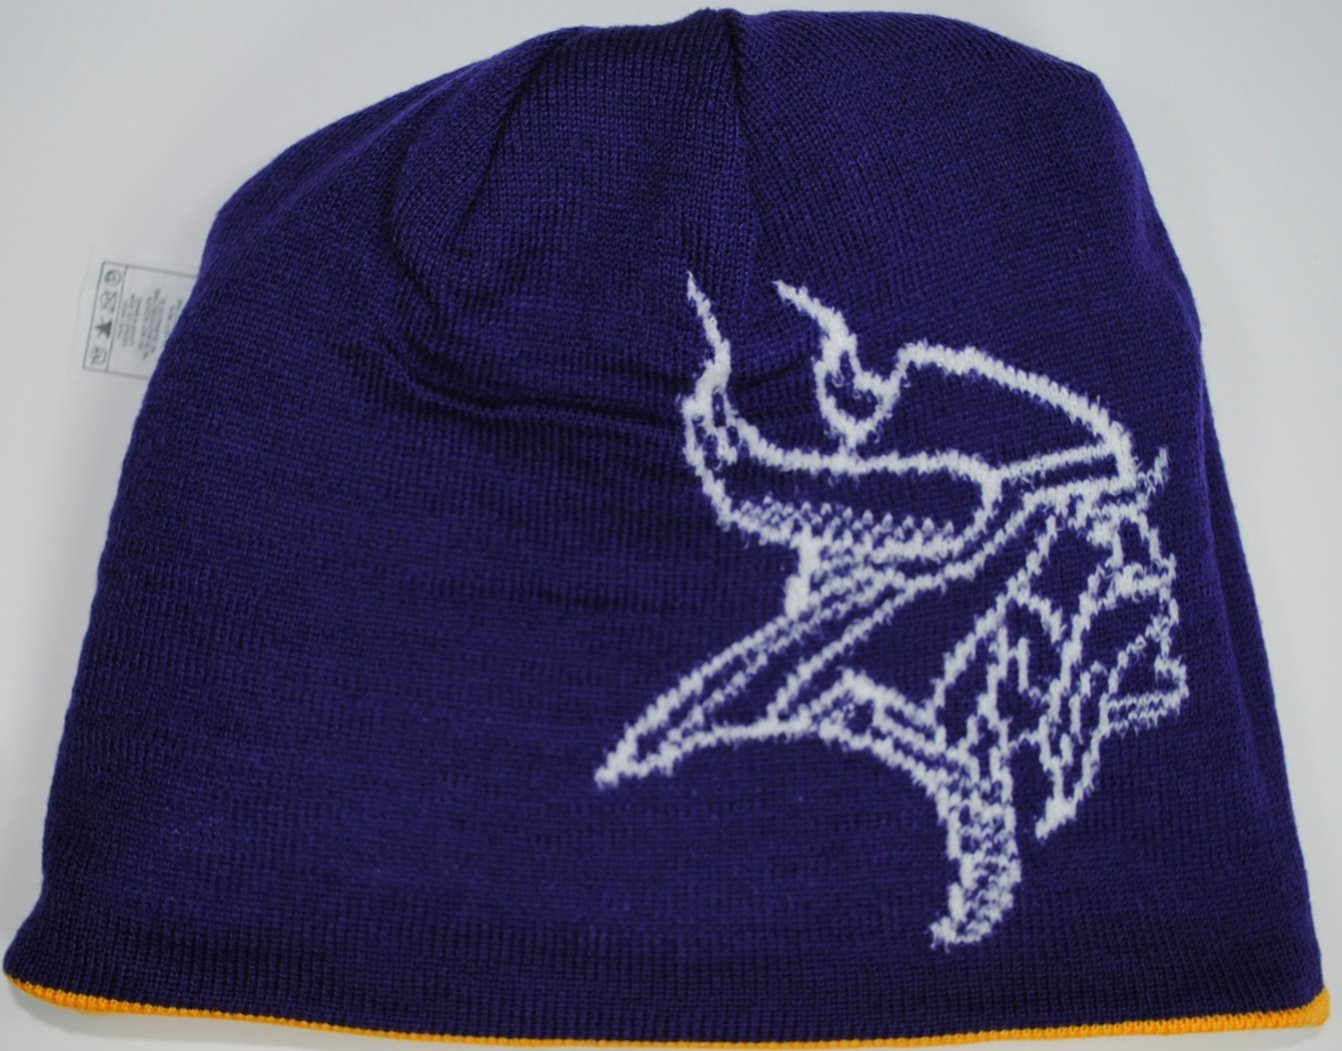 Minnesota Vikings Reversible Team Color Knit Beanie Hat 2016 fashin reversible skullies